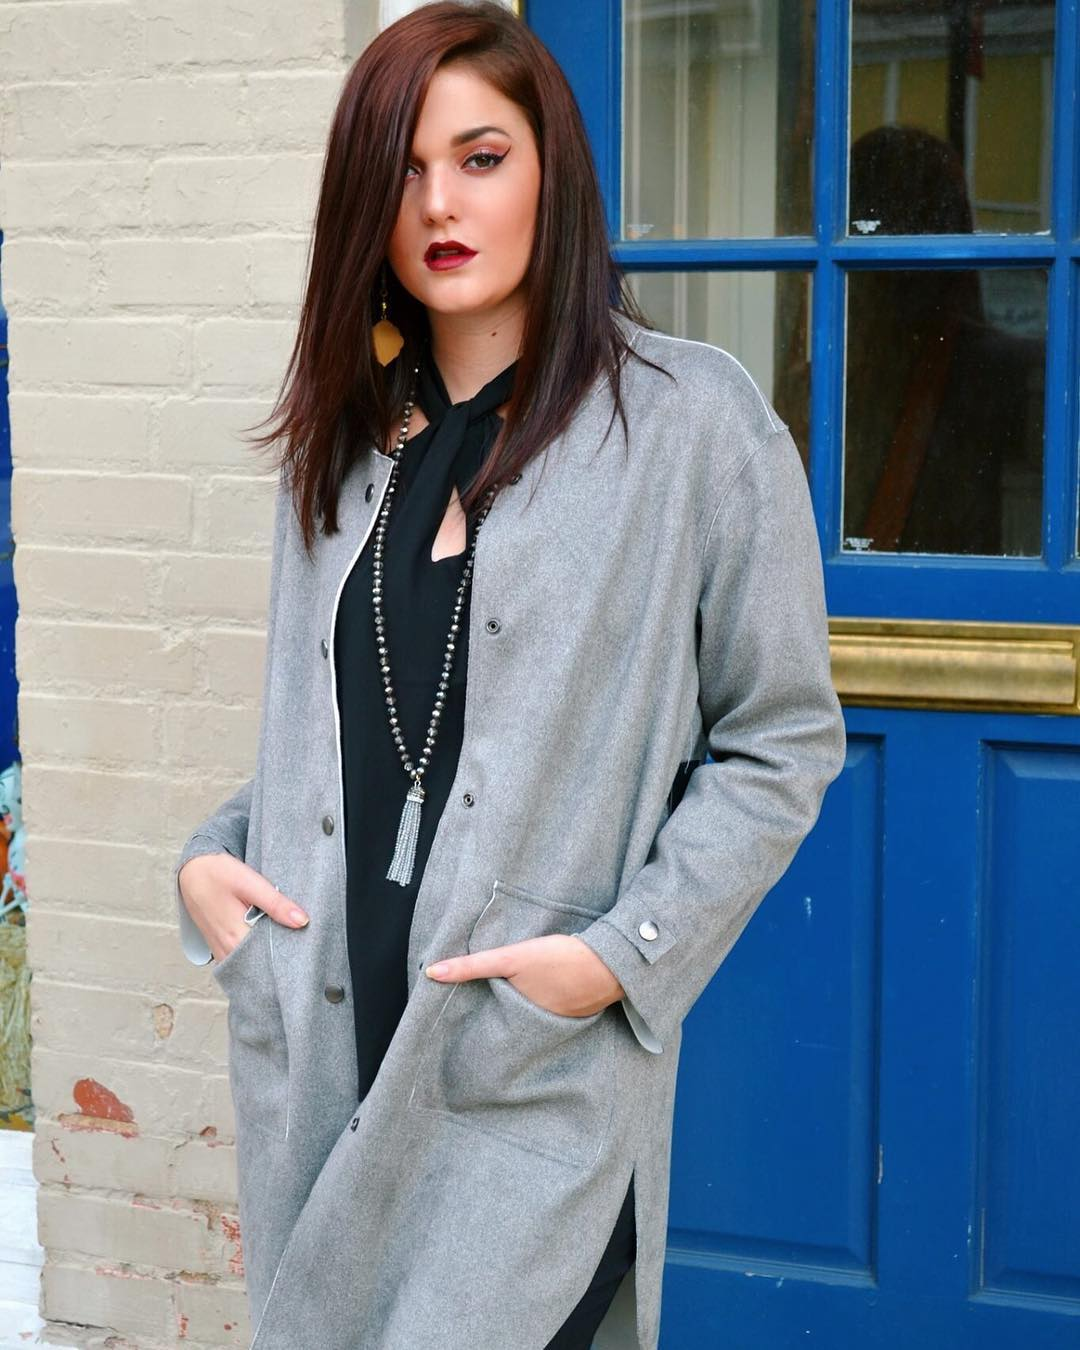 Plane Grey Cardigan With Stylish Black Top